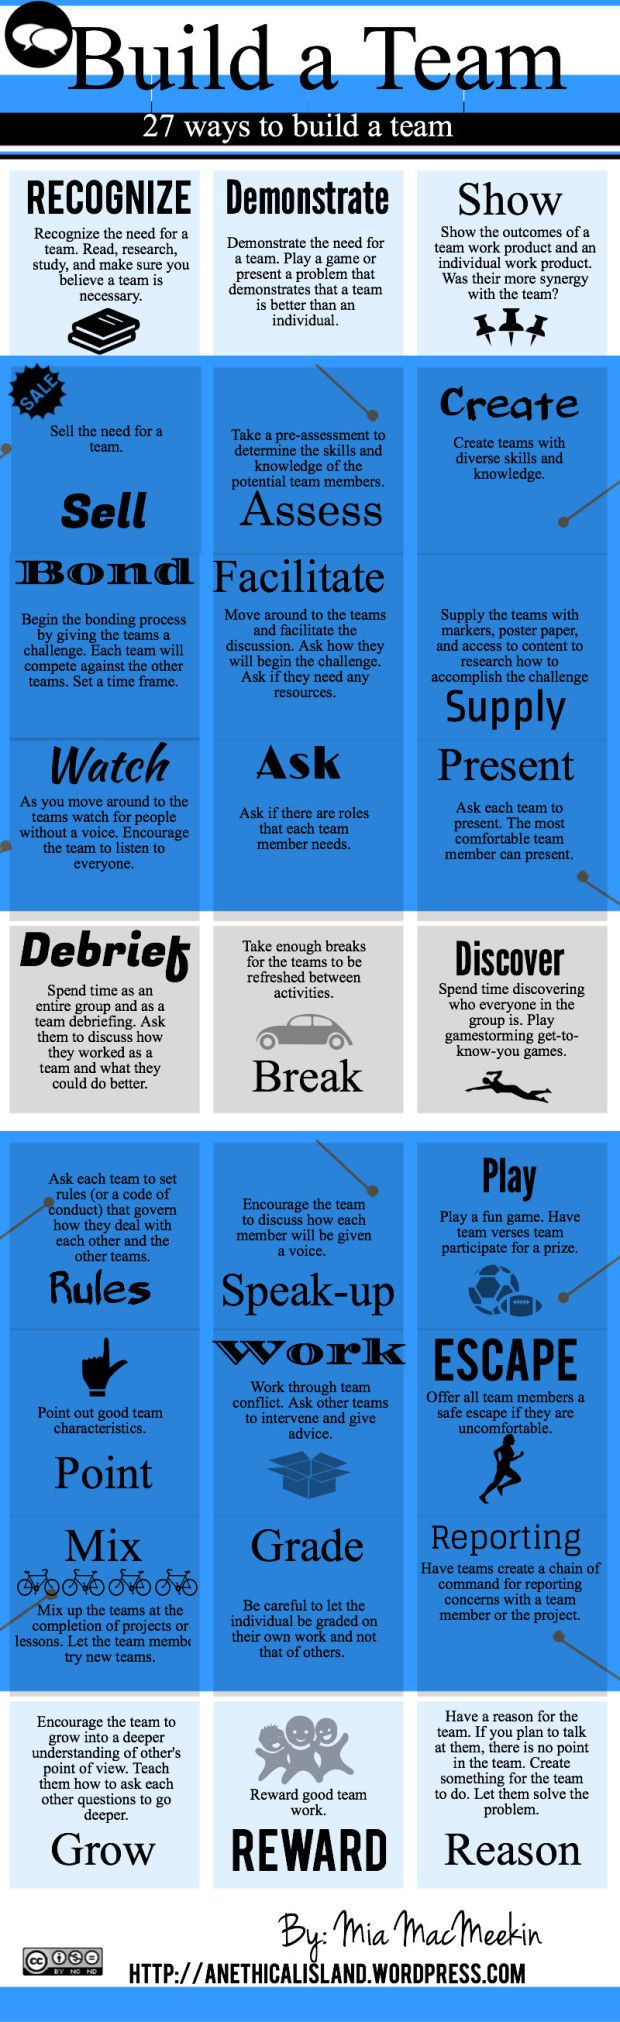 How To Build A Team (Infographic)